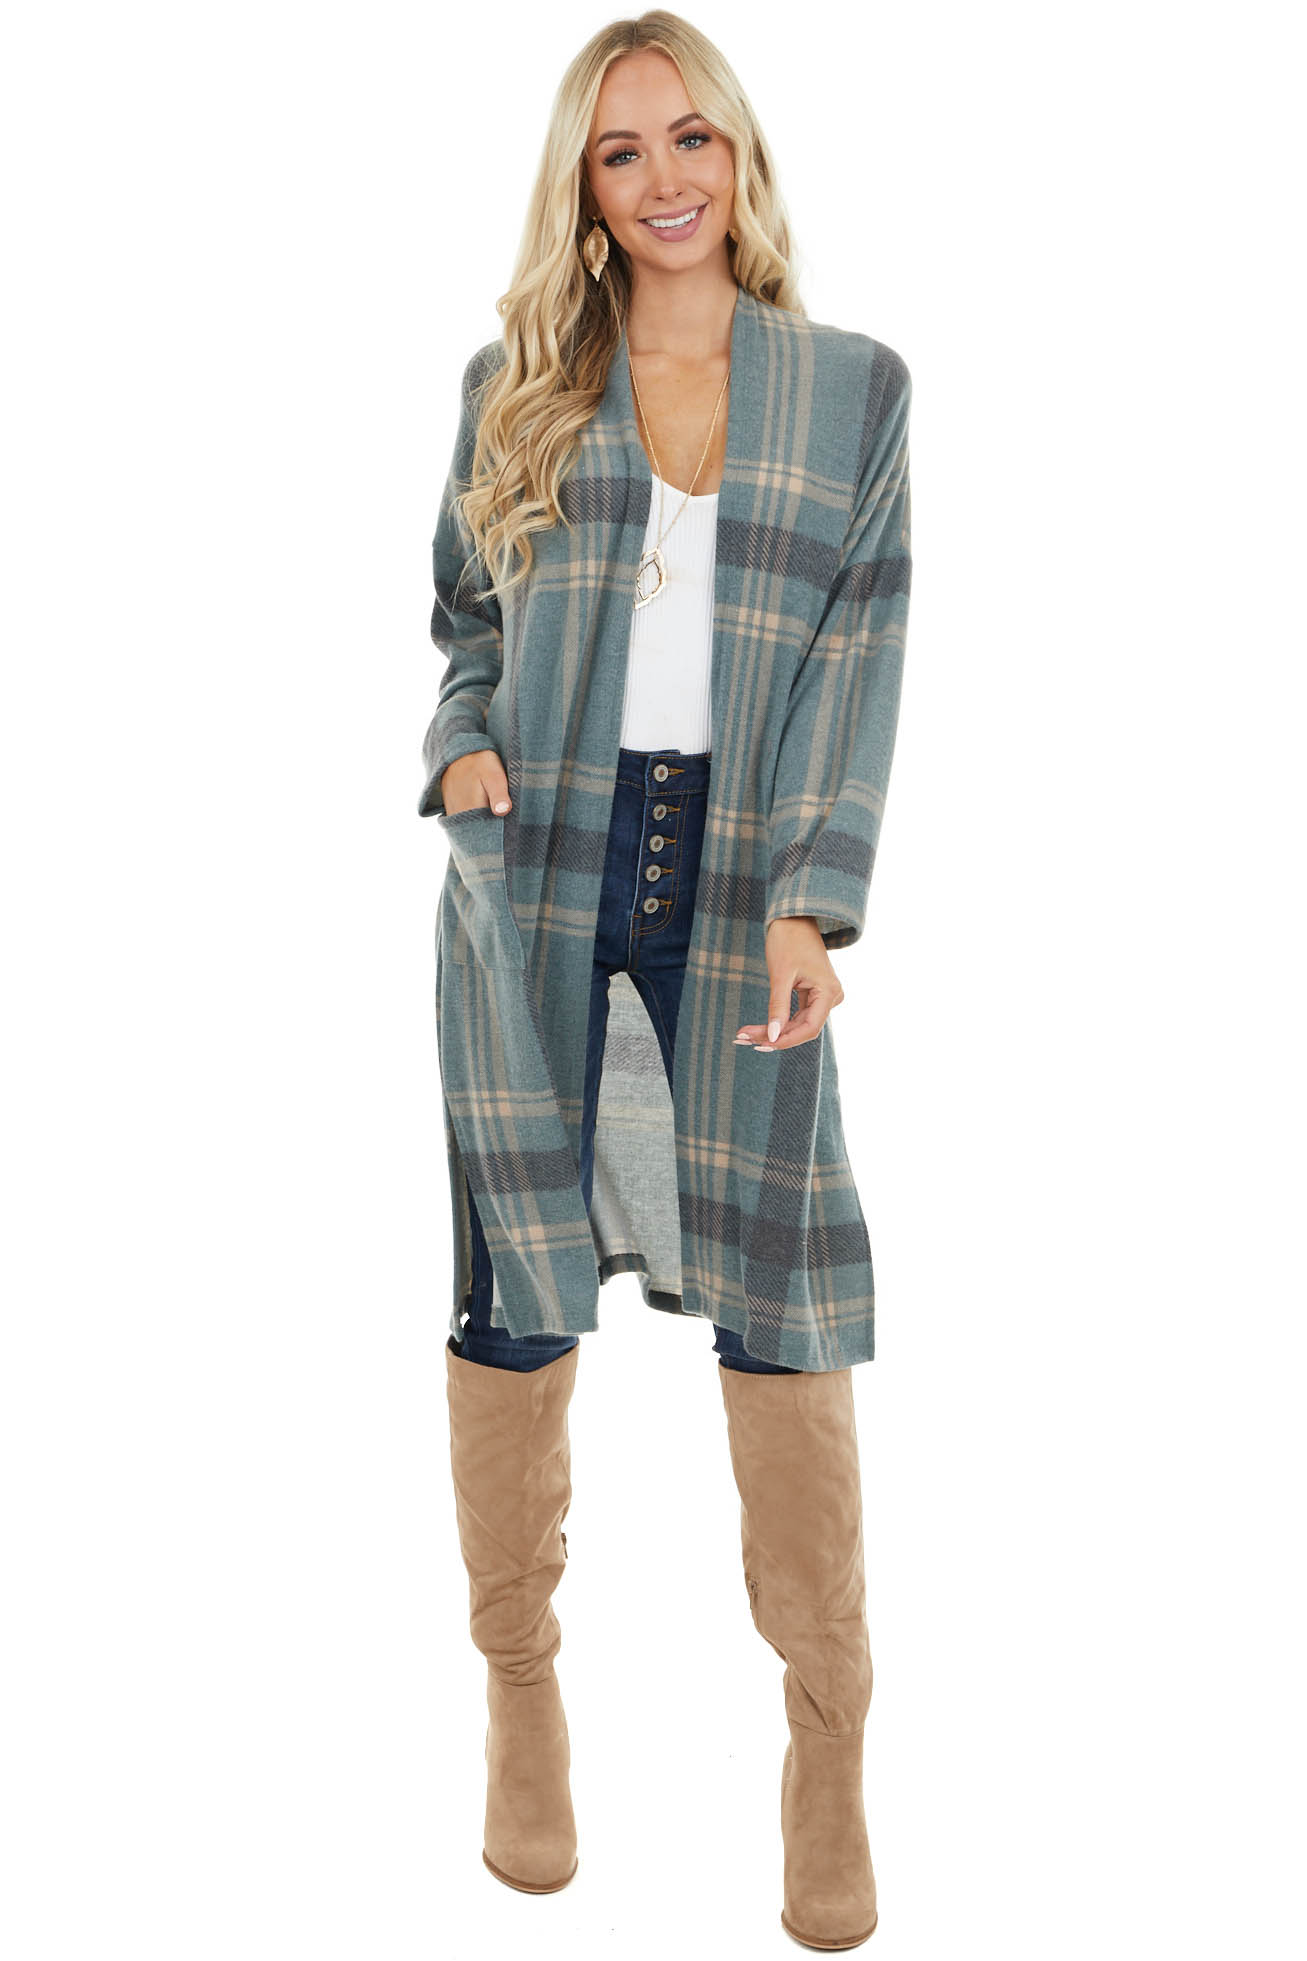 Dusty Pine Plaid Long Sleeve Cardigan with Pockets